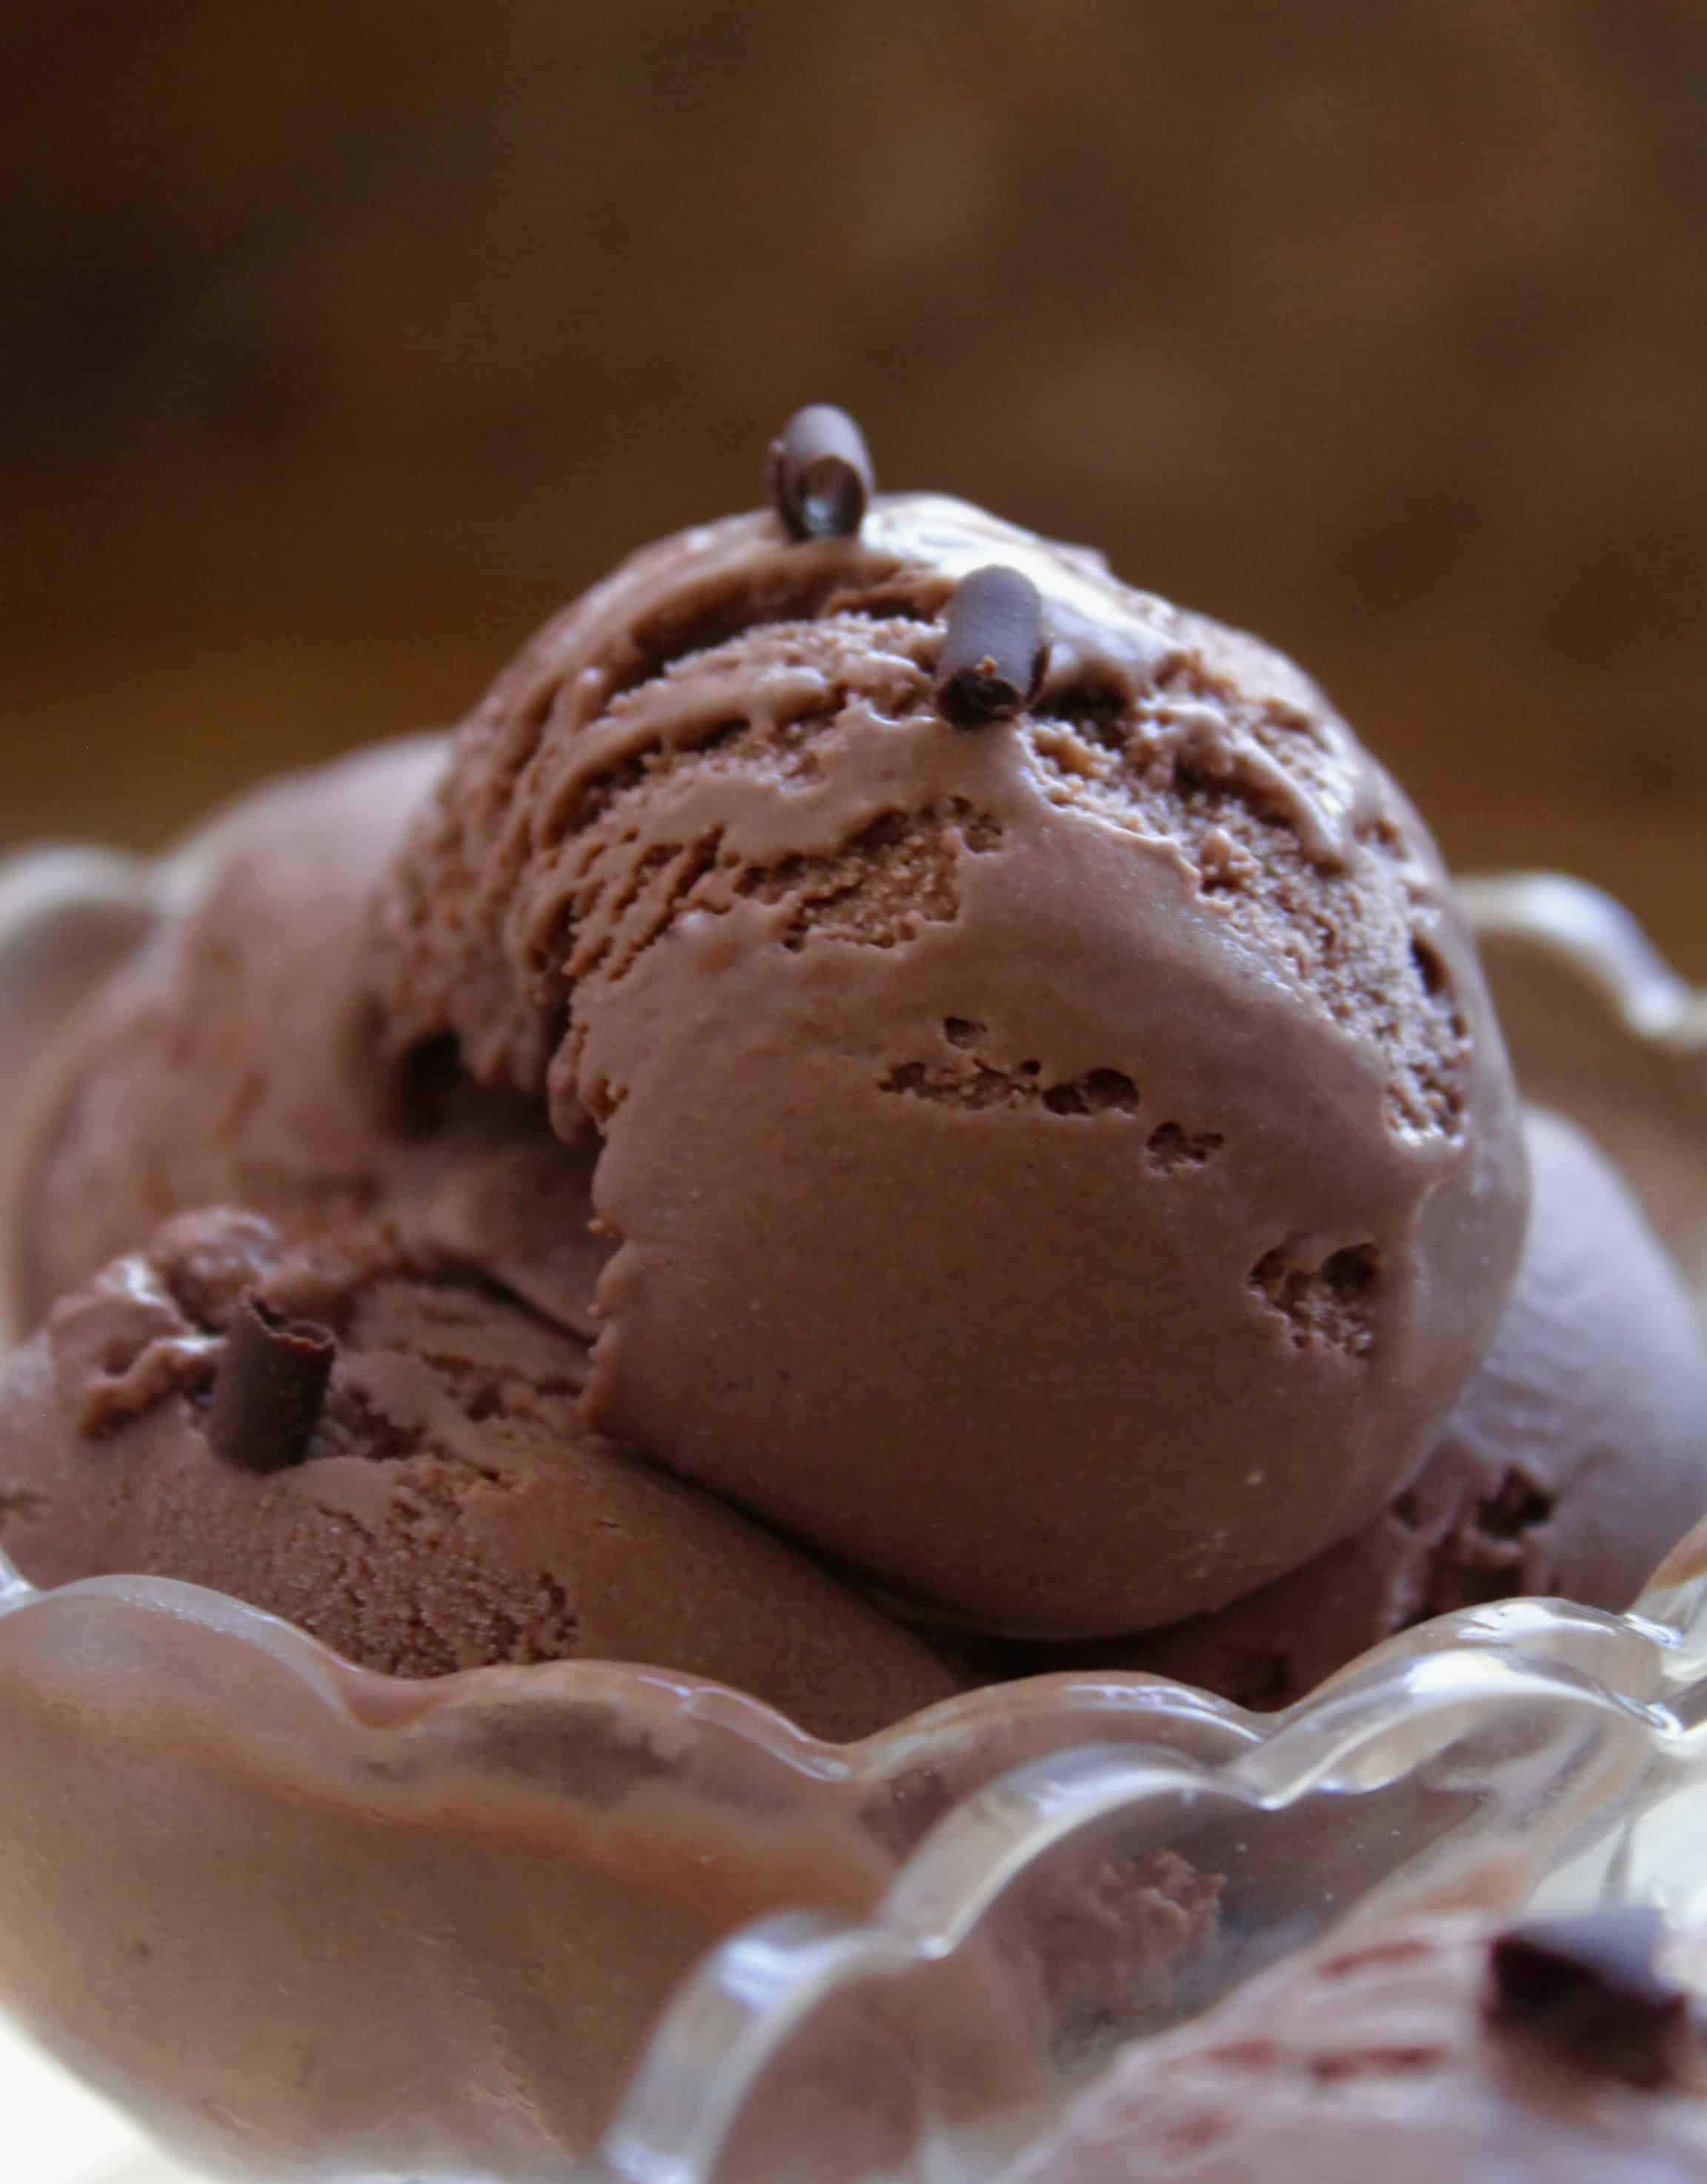 chocolate custard ice cream scoops in a crystal bowl